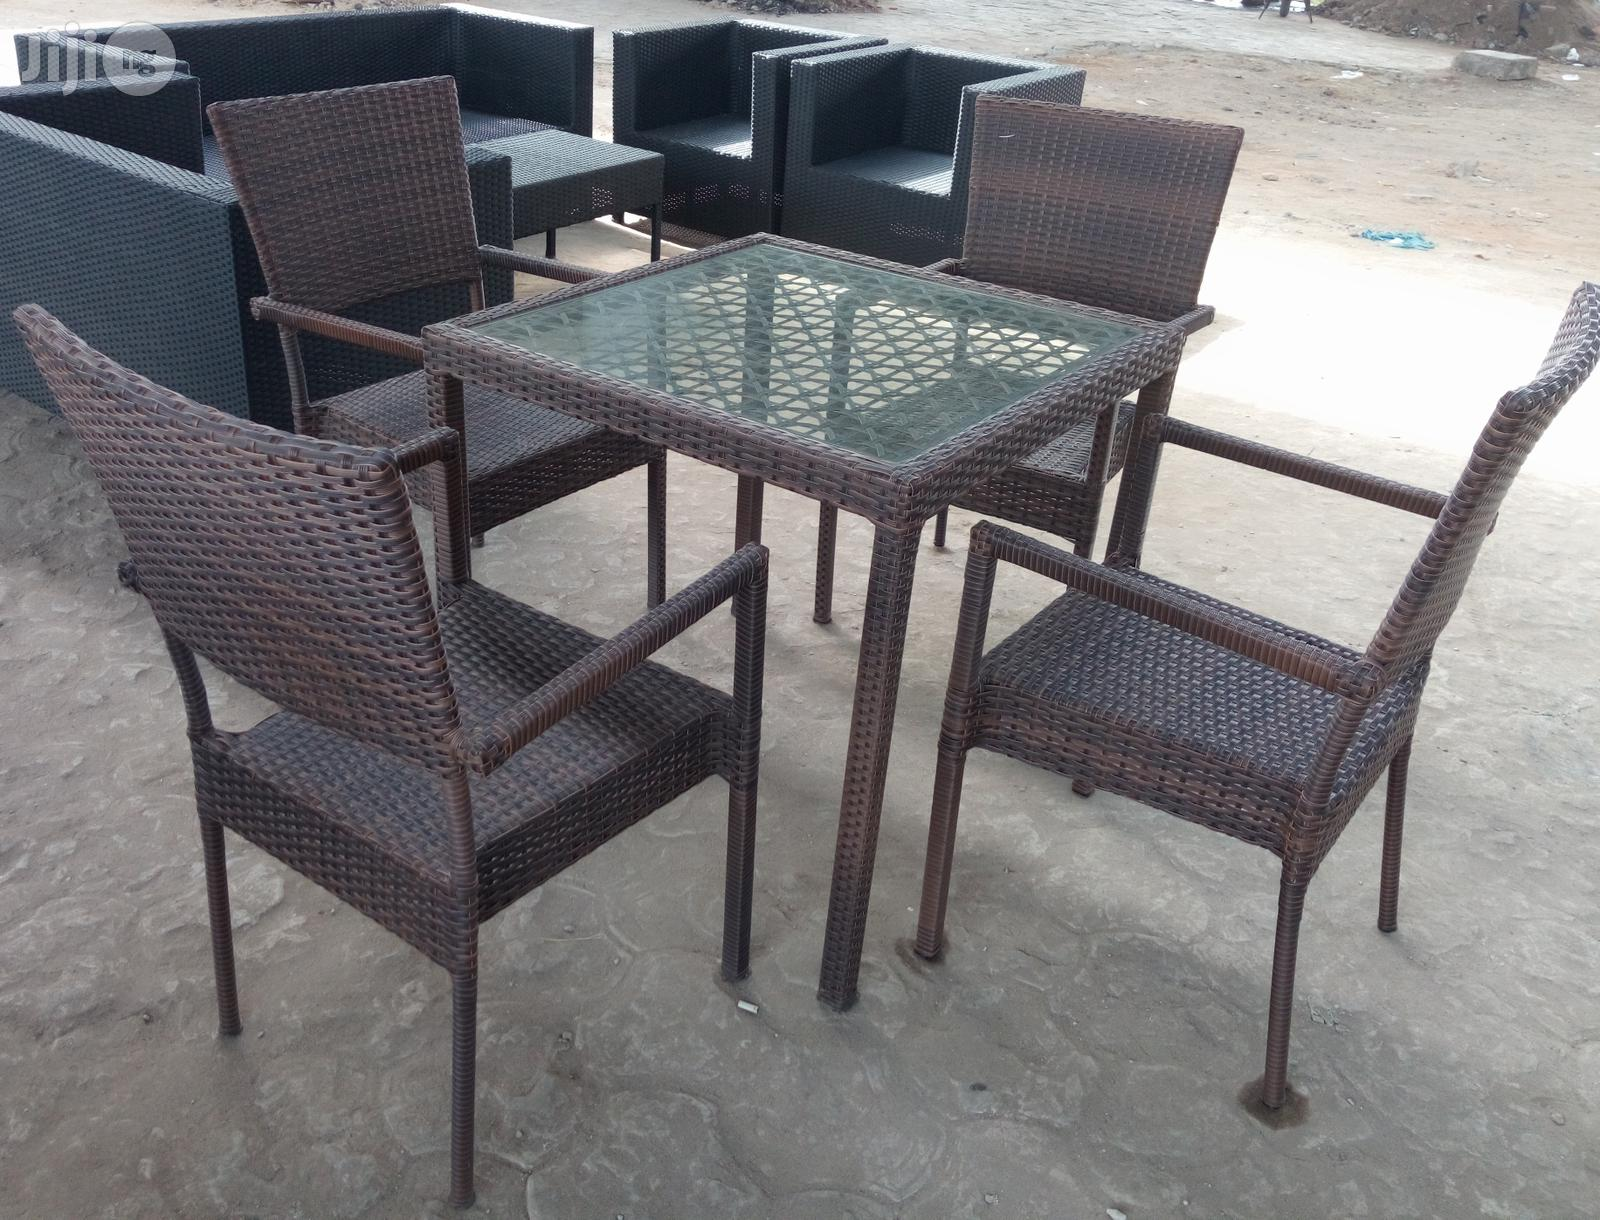 4 Seater Cane Dining Table Brand New Imported